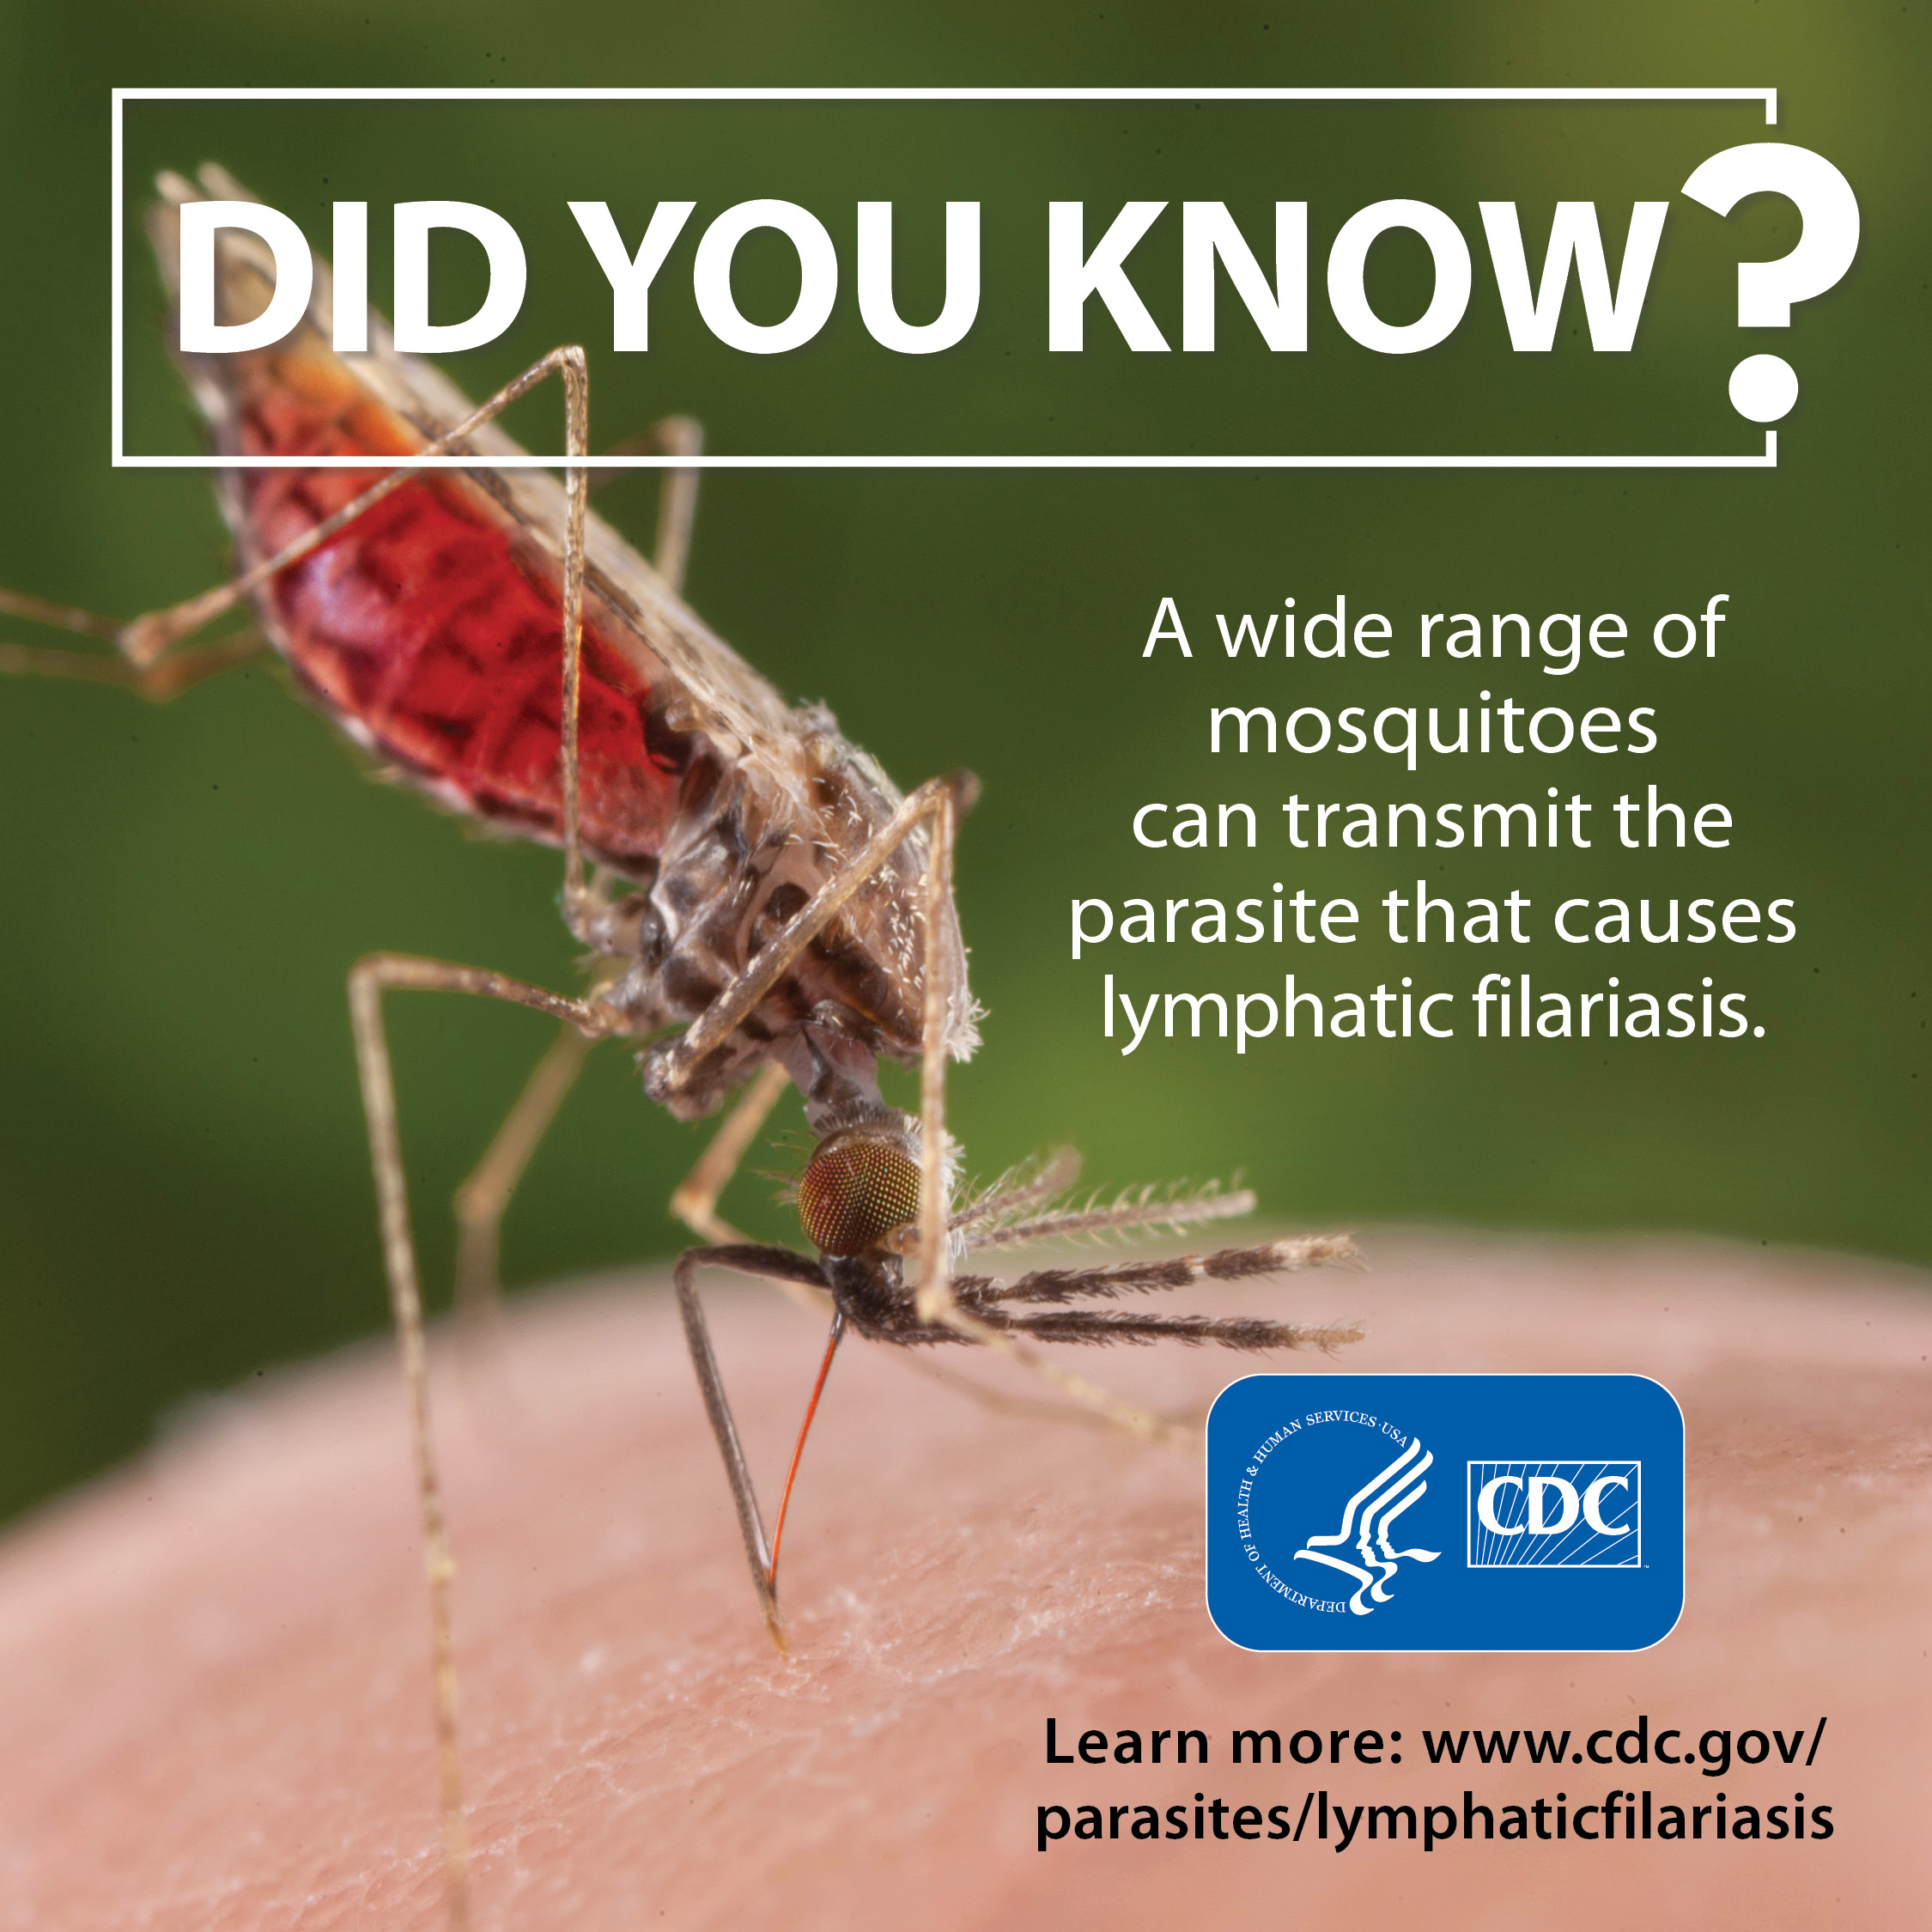 Did you know a wide range of mosquitoes can transmit the parasite that causes lymphatic filarisis.